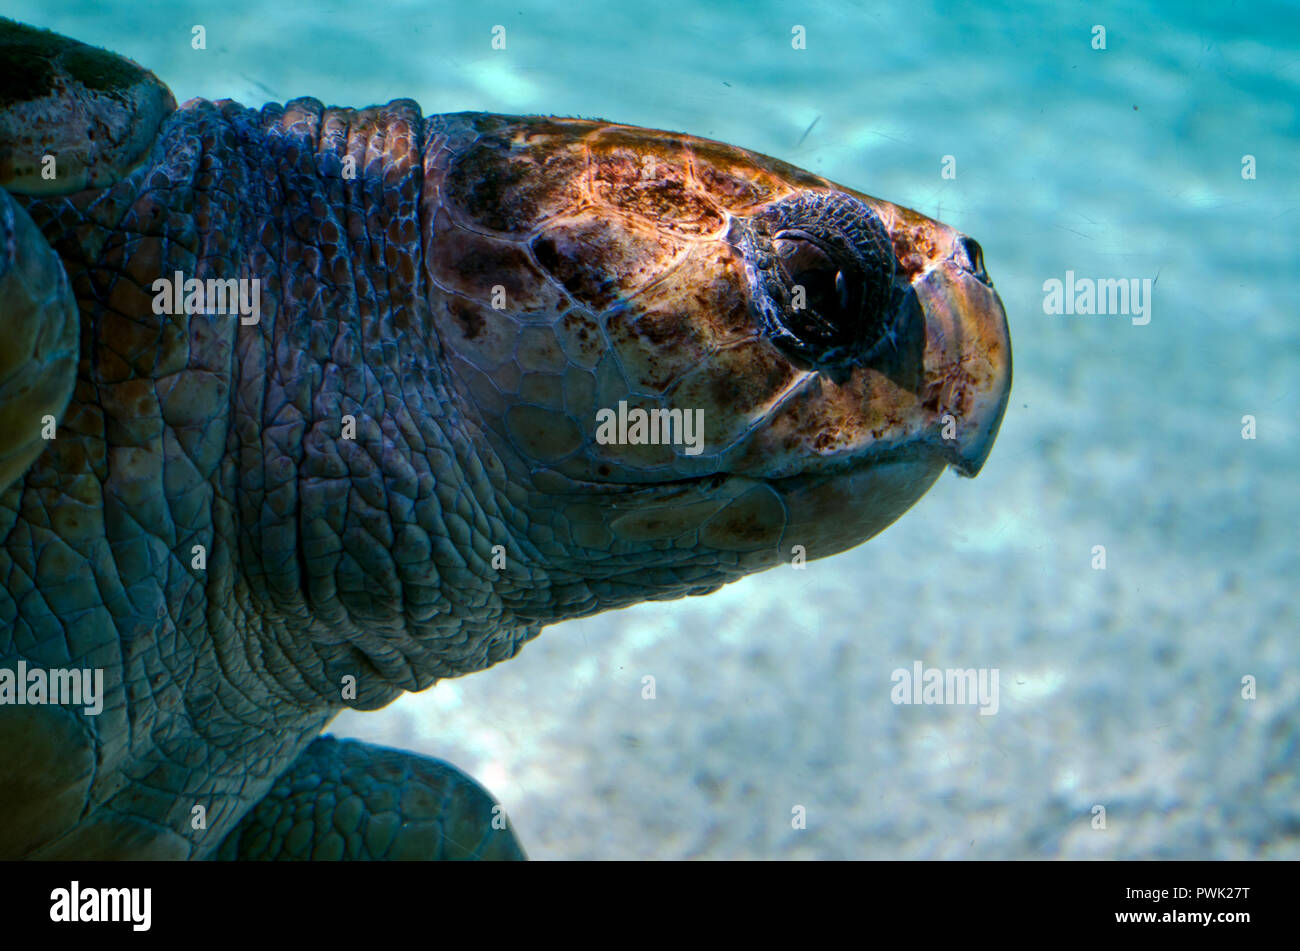 this is a side view of a giant sea turtles swimming stock